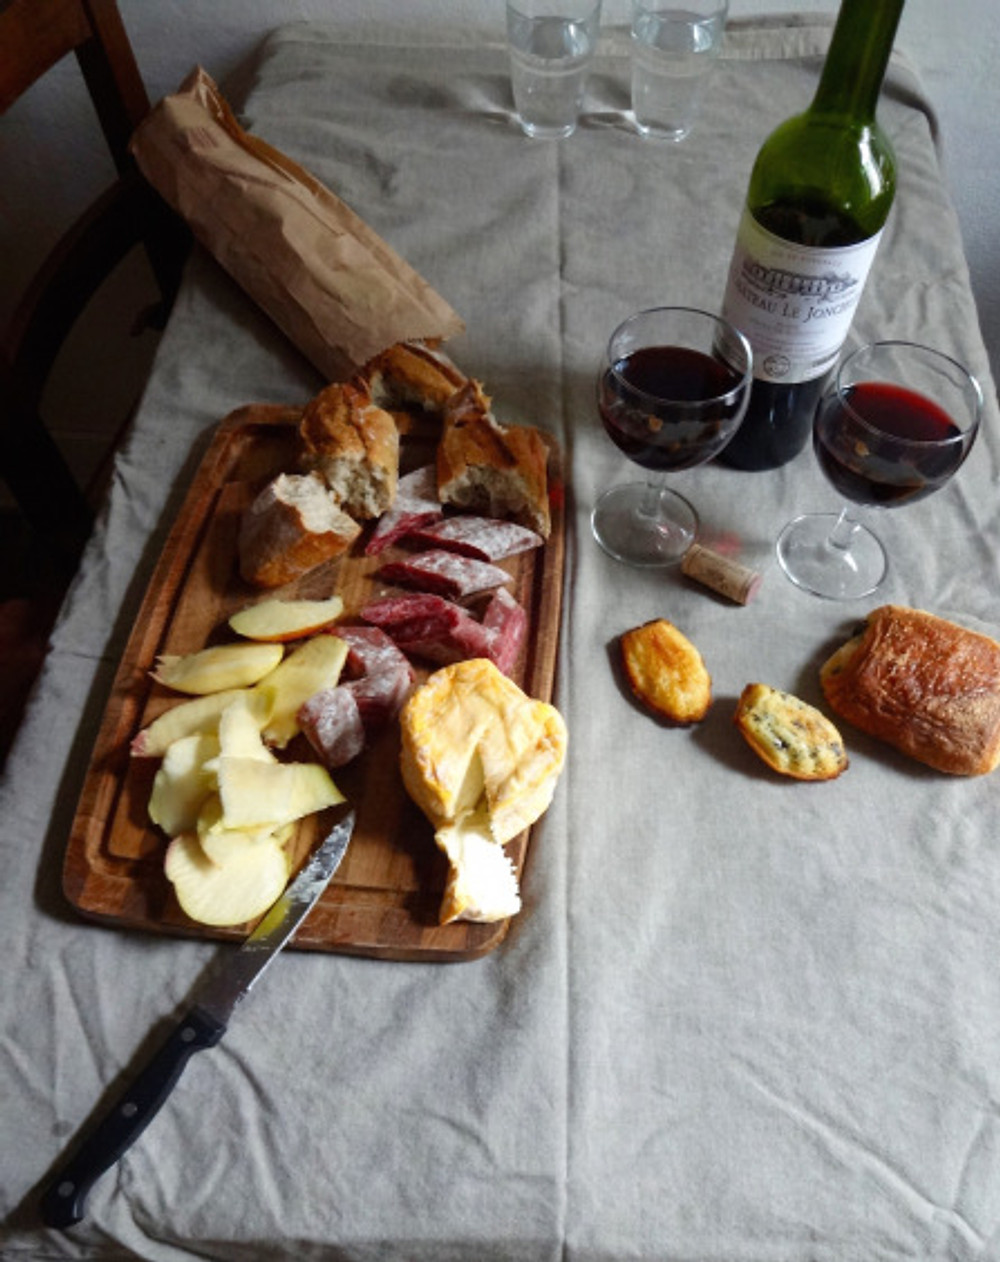 After finding the Canal St Martin to be underwhelming compared to the last time I was here (a river of floating garbage? really?!! ew...), we picnicked in our flat with yummies picked up from the fromagerie, boulangerie, butcher and more. Bon appetit!